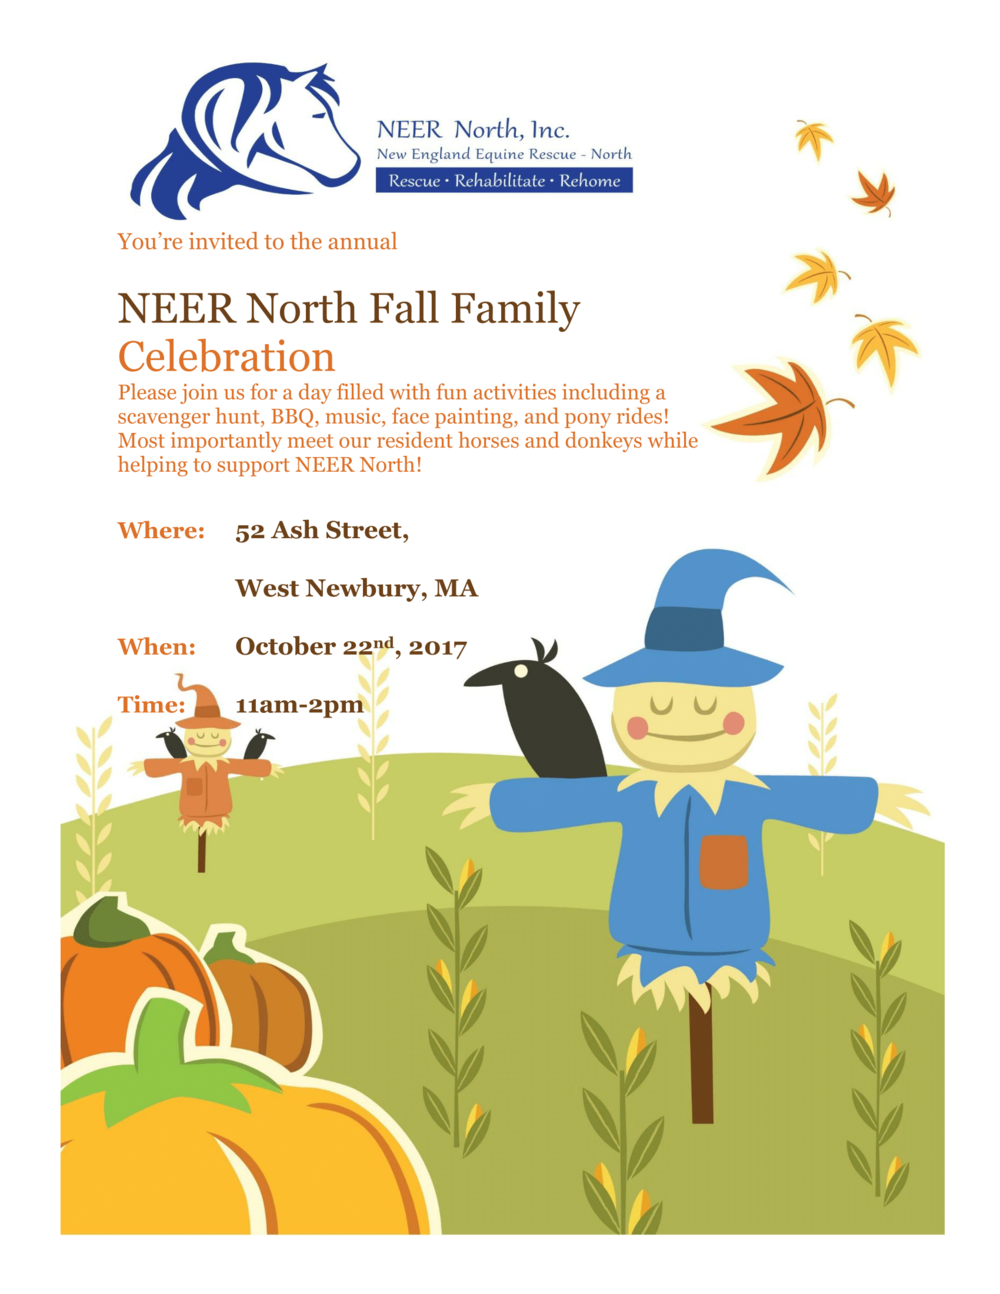 NEER North Fall Festival Flyer 10.22.2017-1.png